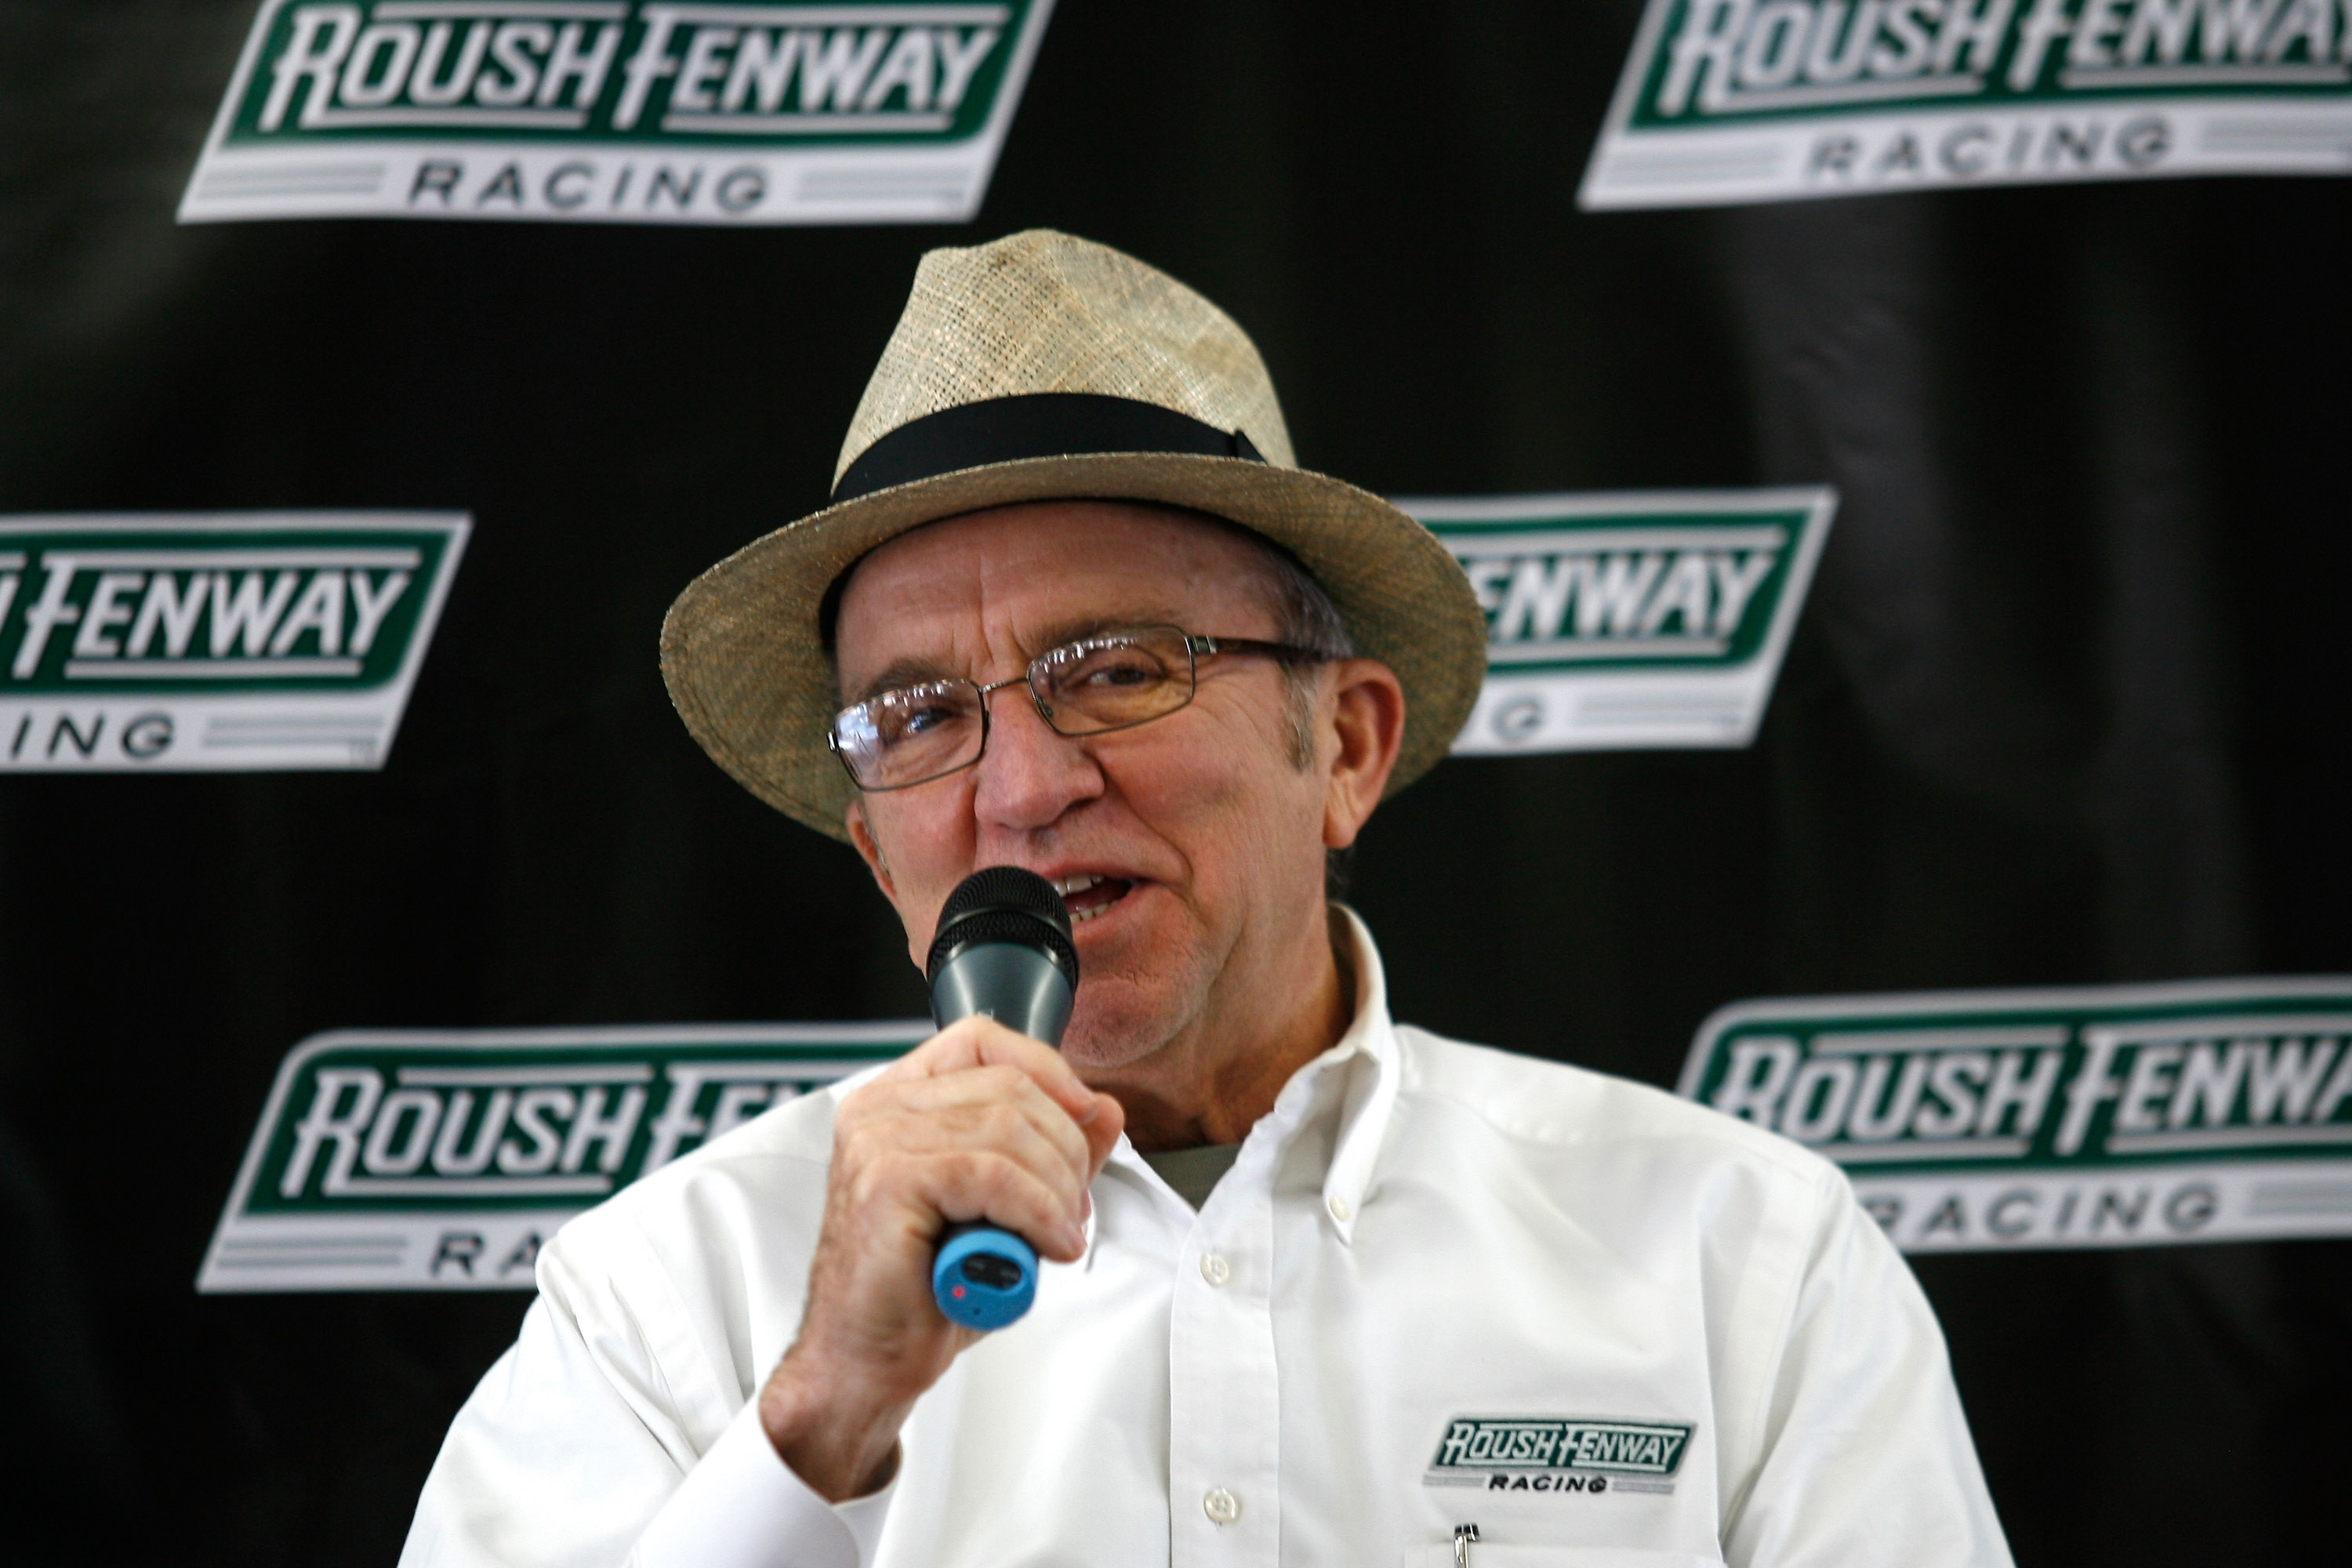 CONCORD, NC - JANUARY 19:  Roush-Fenway Racing team owner Jack Roush speaks with the media during the NASCAR Sprint Media Tour hosted by Charlotte Motor Speedway on January 19, 2010 in Concord, North Carolina.  (Photo by Jason Smith/Getty Images)